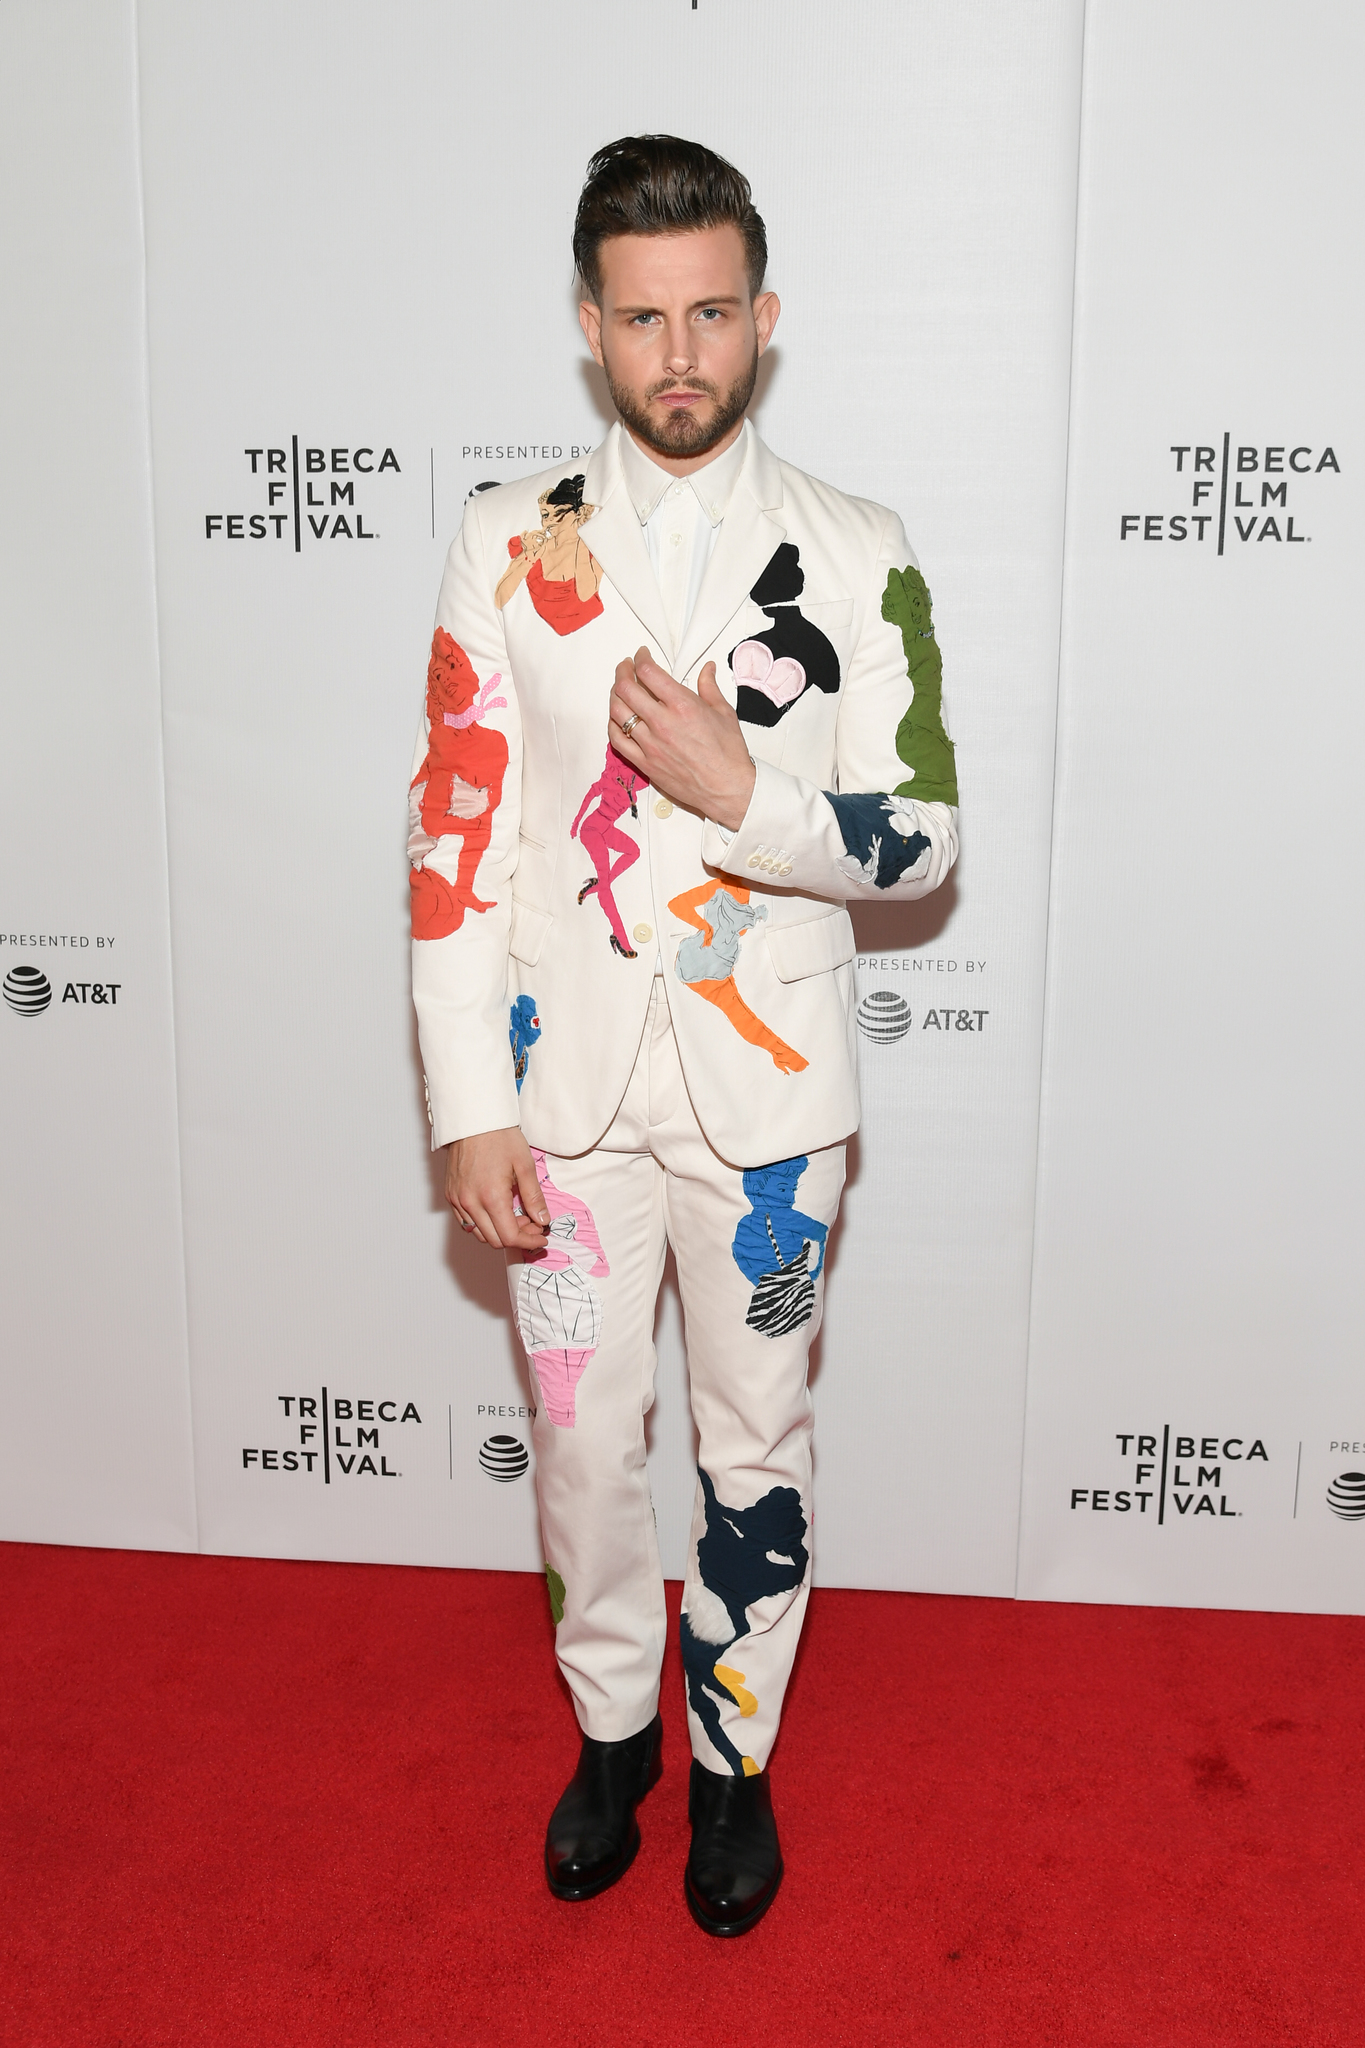 Nico Tortorella at an event for Younger (2015)